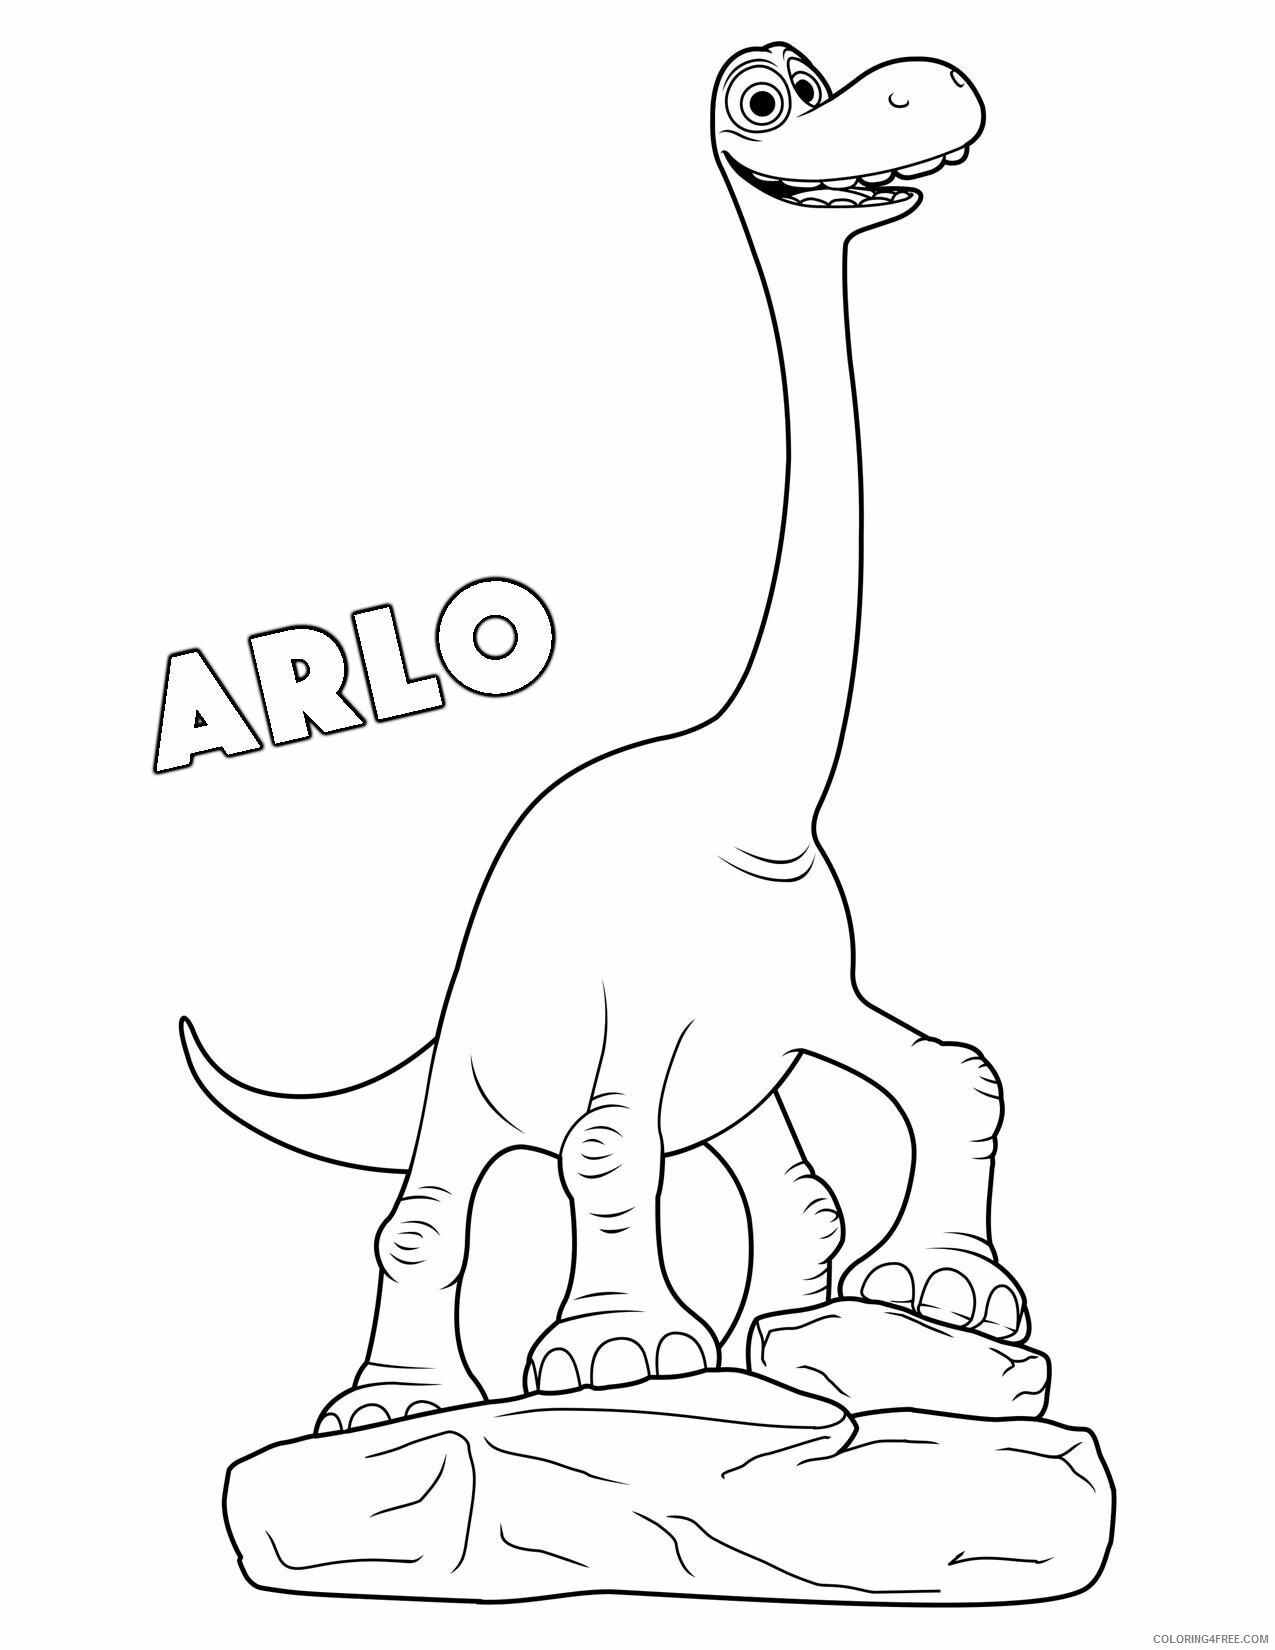 The Good Dinosaur Coloring Pages TV Film Arlo Printable 2020 08809 Coloring4free